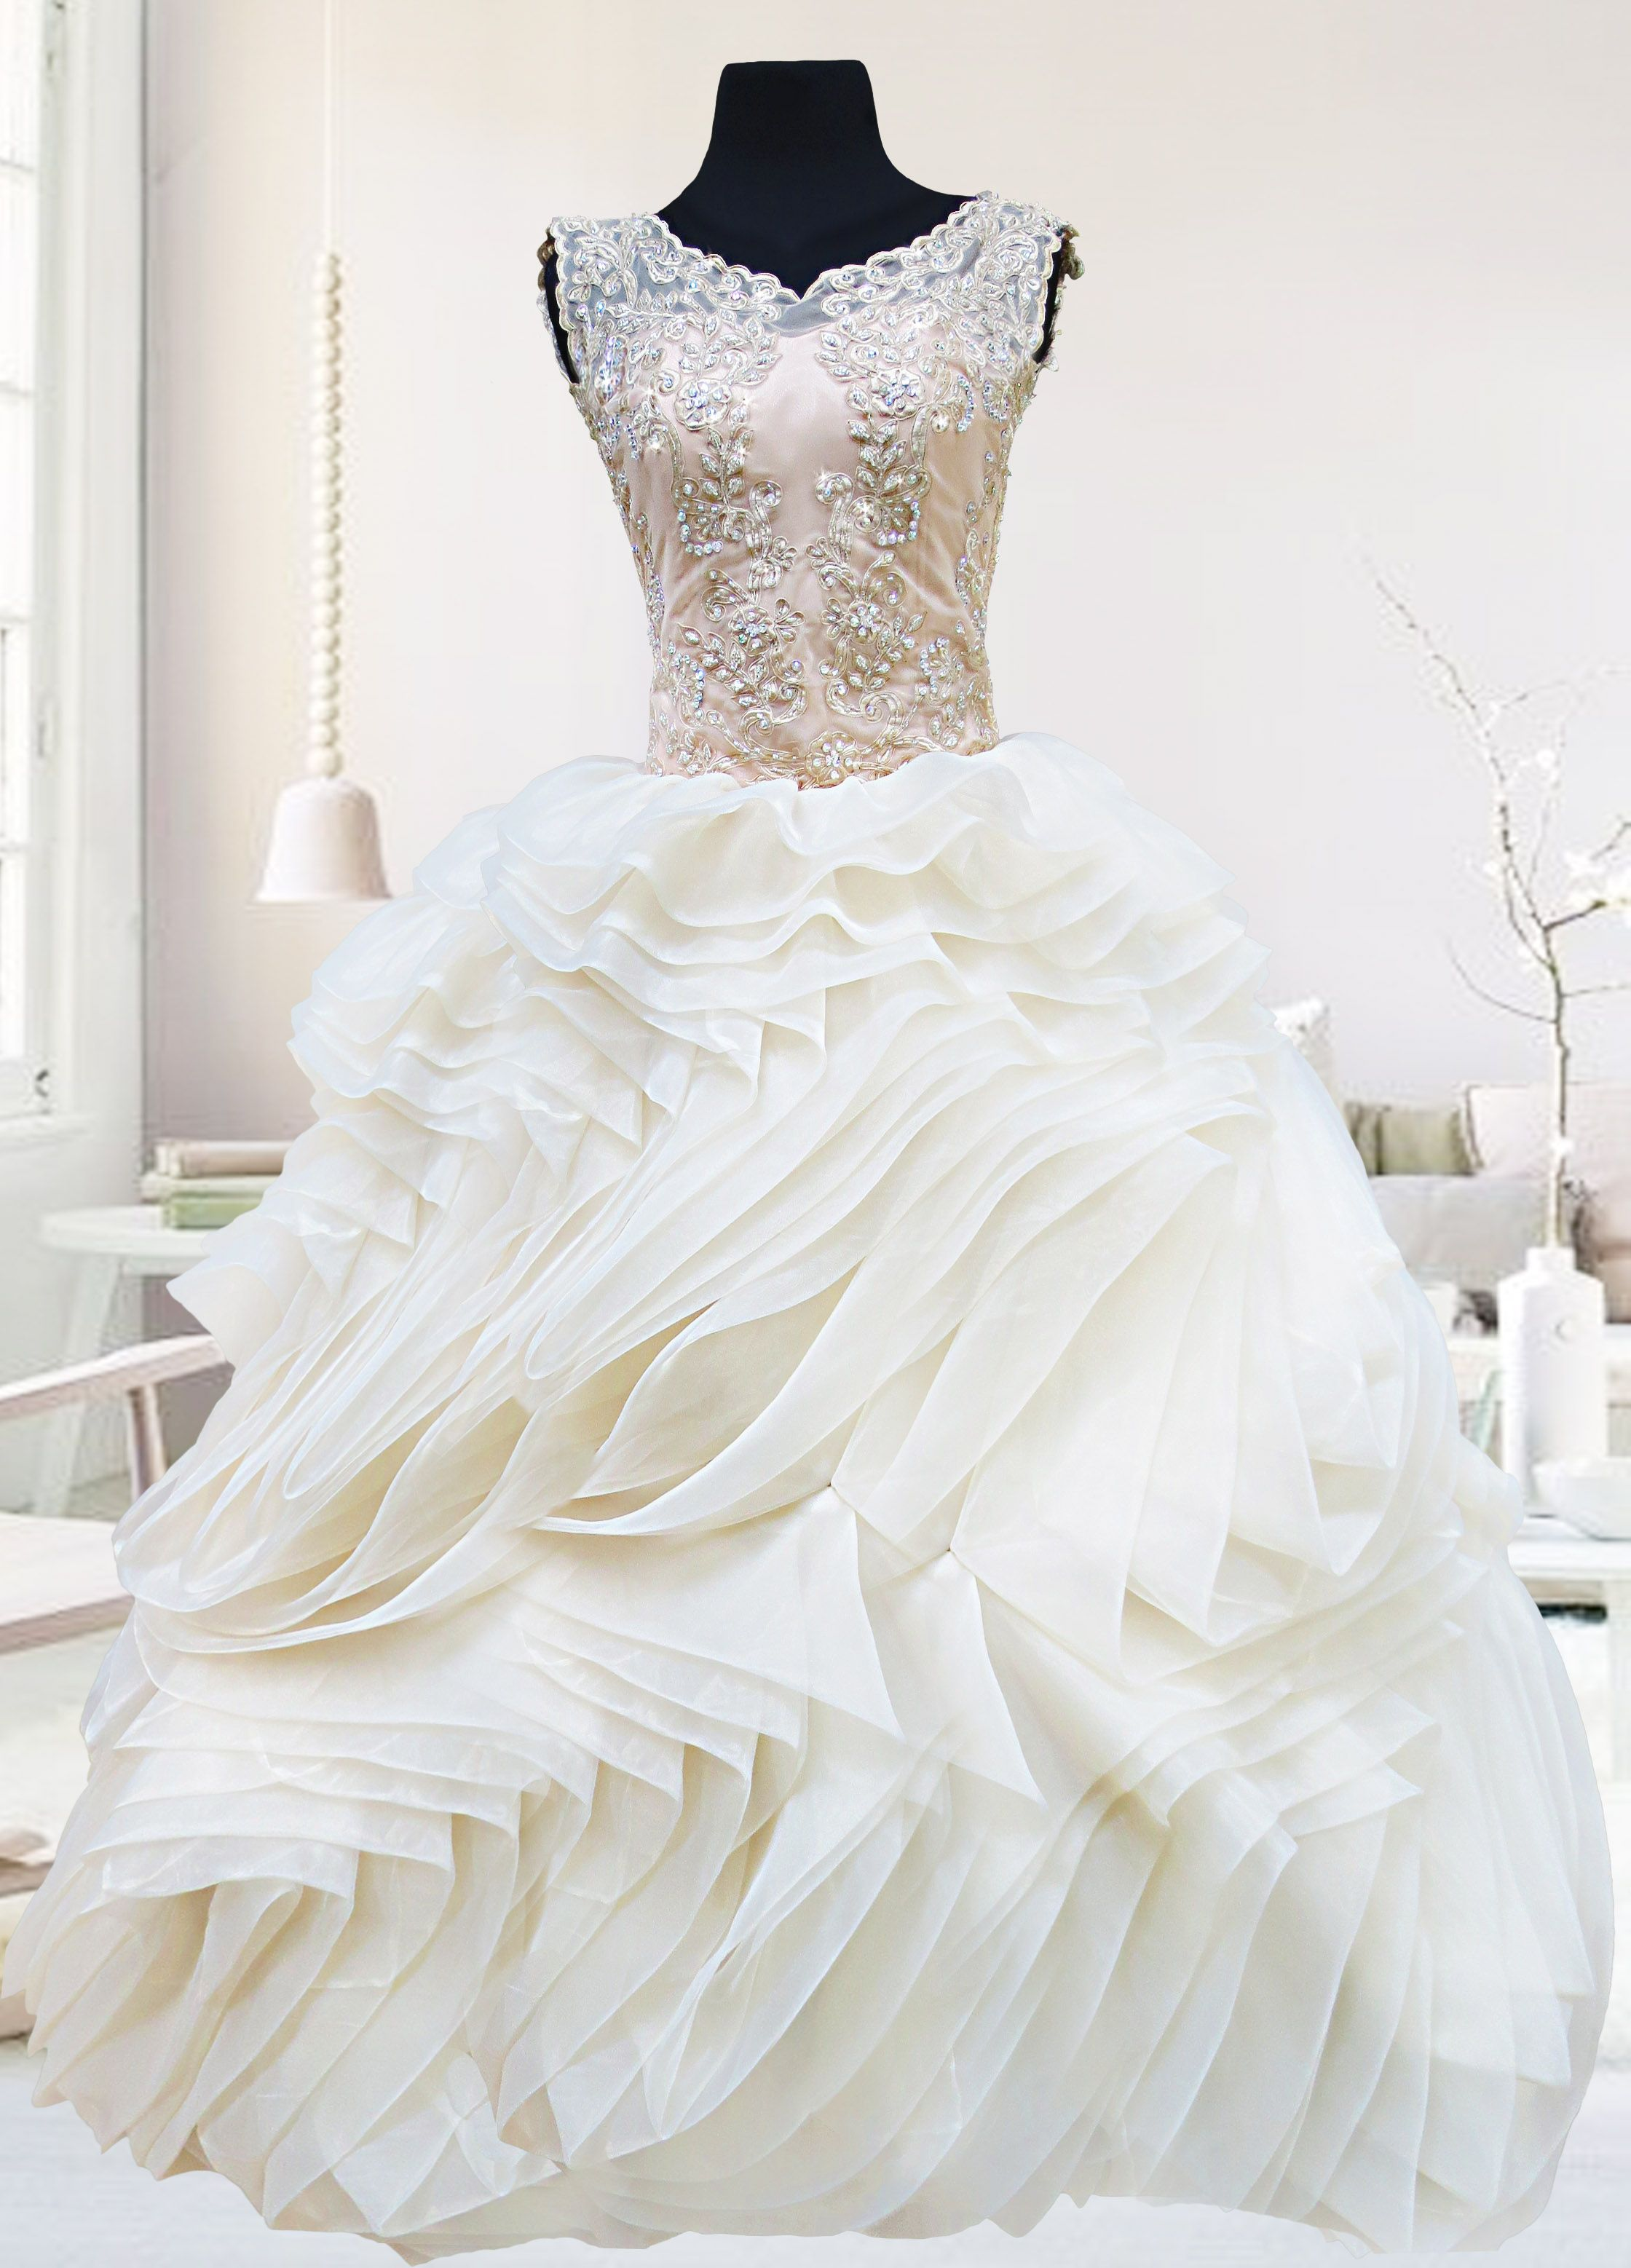 wedding dress for rent The Angelina Gown is a champagne vintage inspired ball gown available for rent at Php5